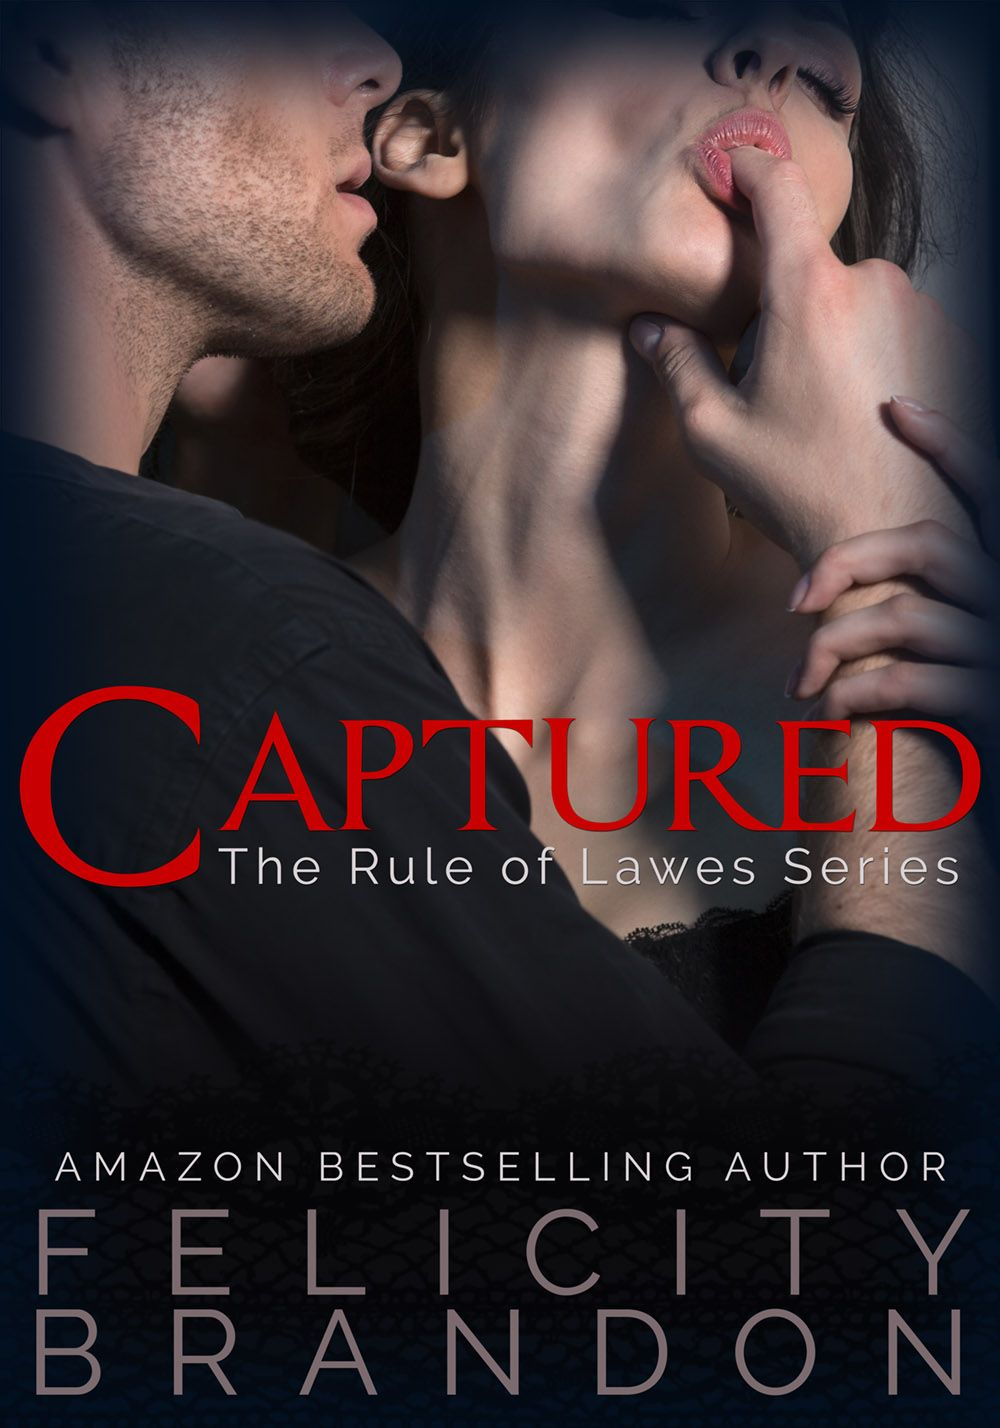 Get Captured for ONLY 99c!